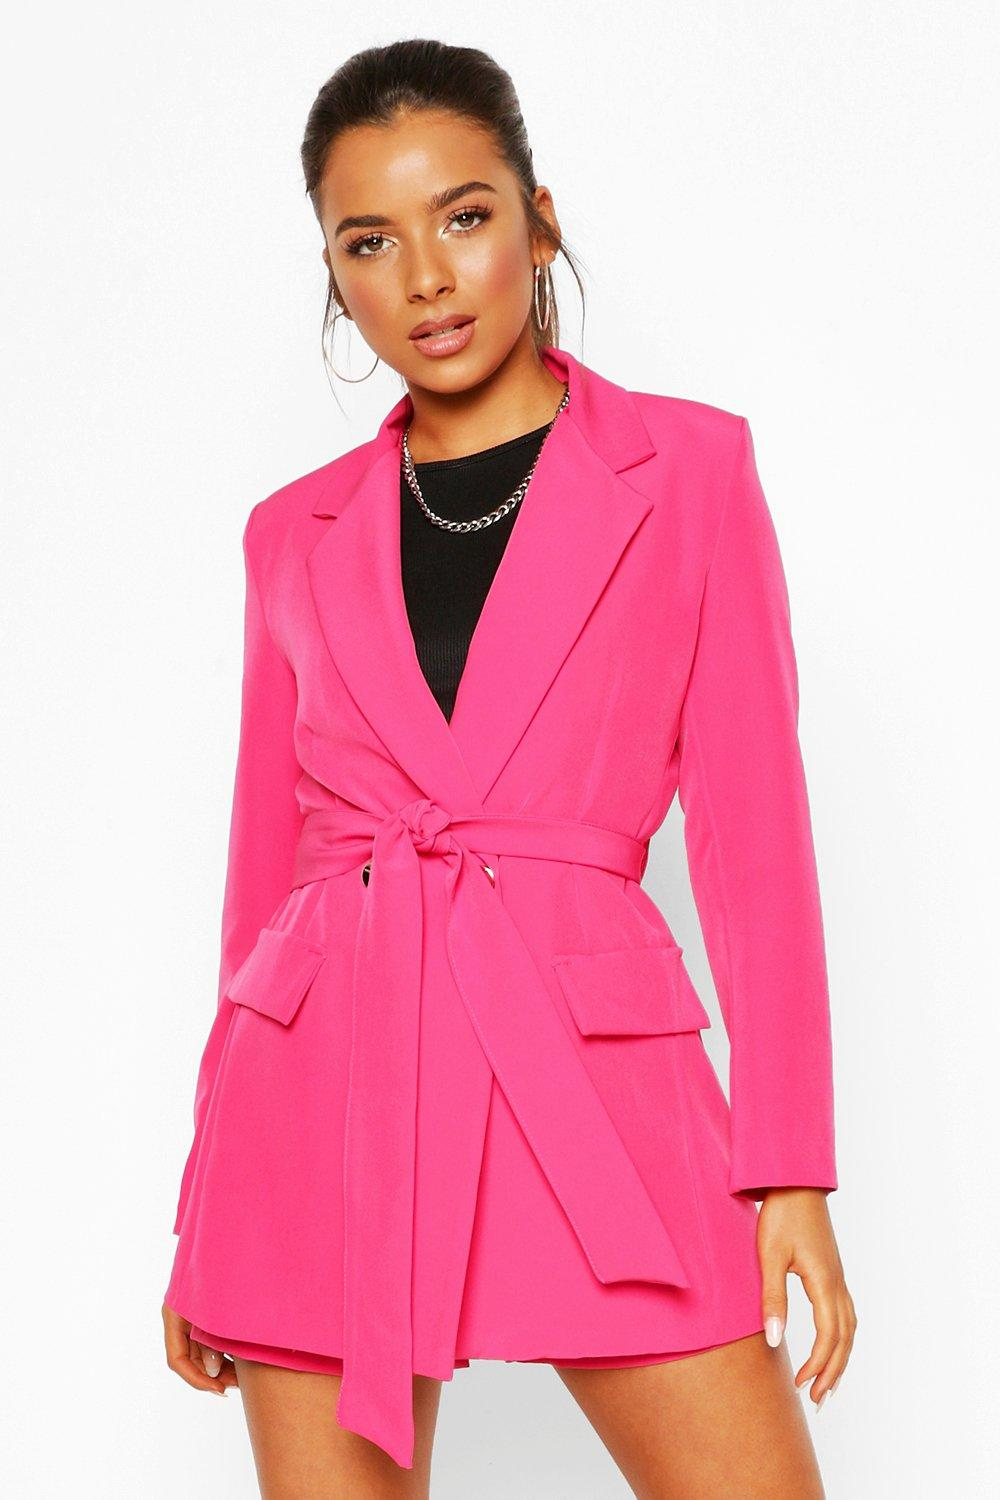 boohoo Womens Petite Belt Detail Double Breasted Blazer - Pink - 12, Pink